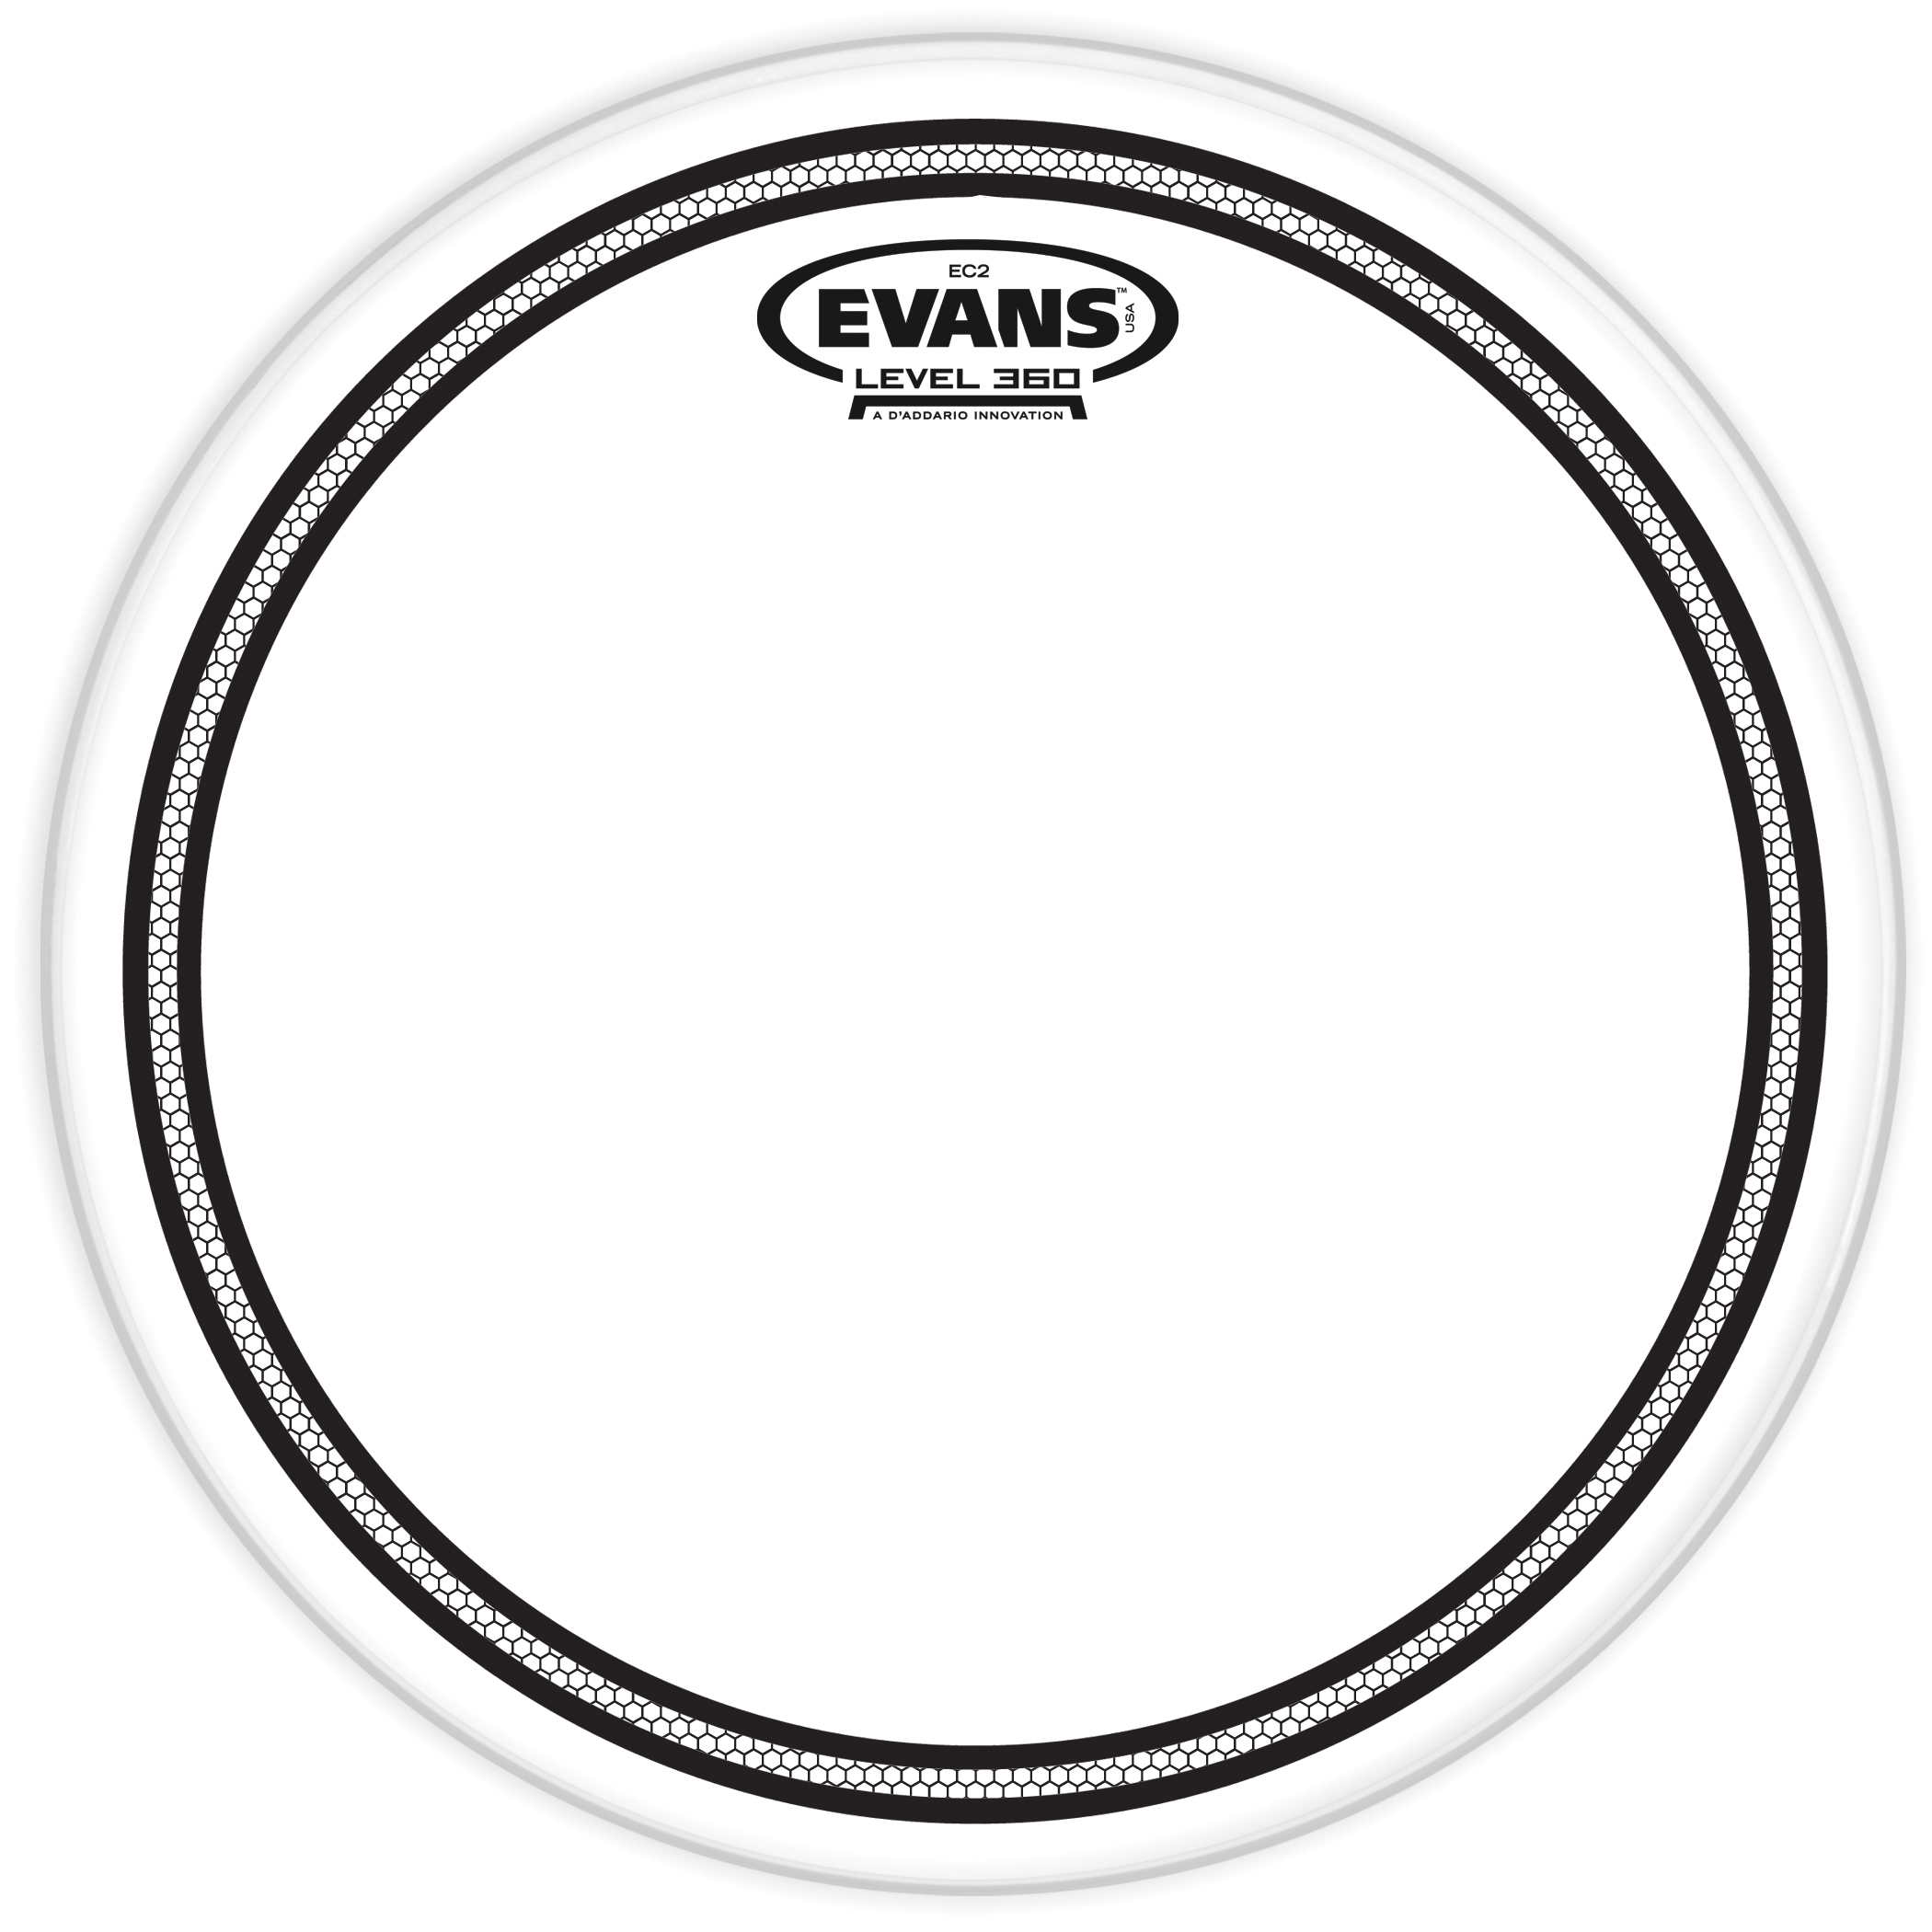 12 EC2 drum head